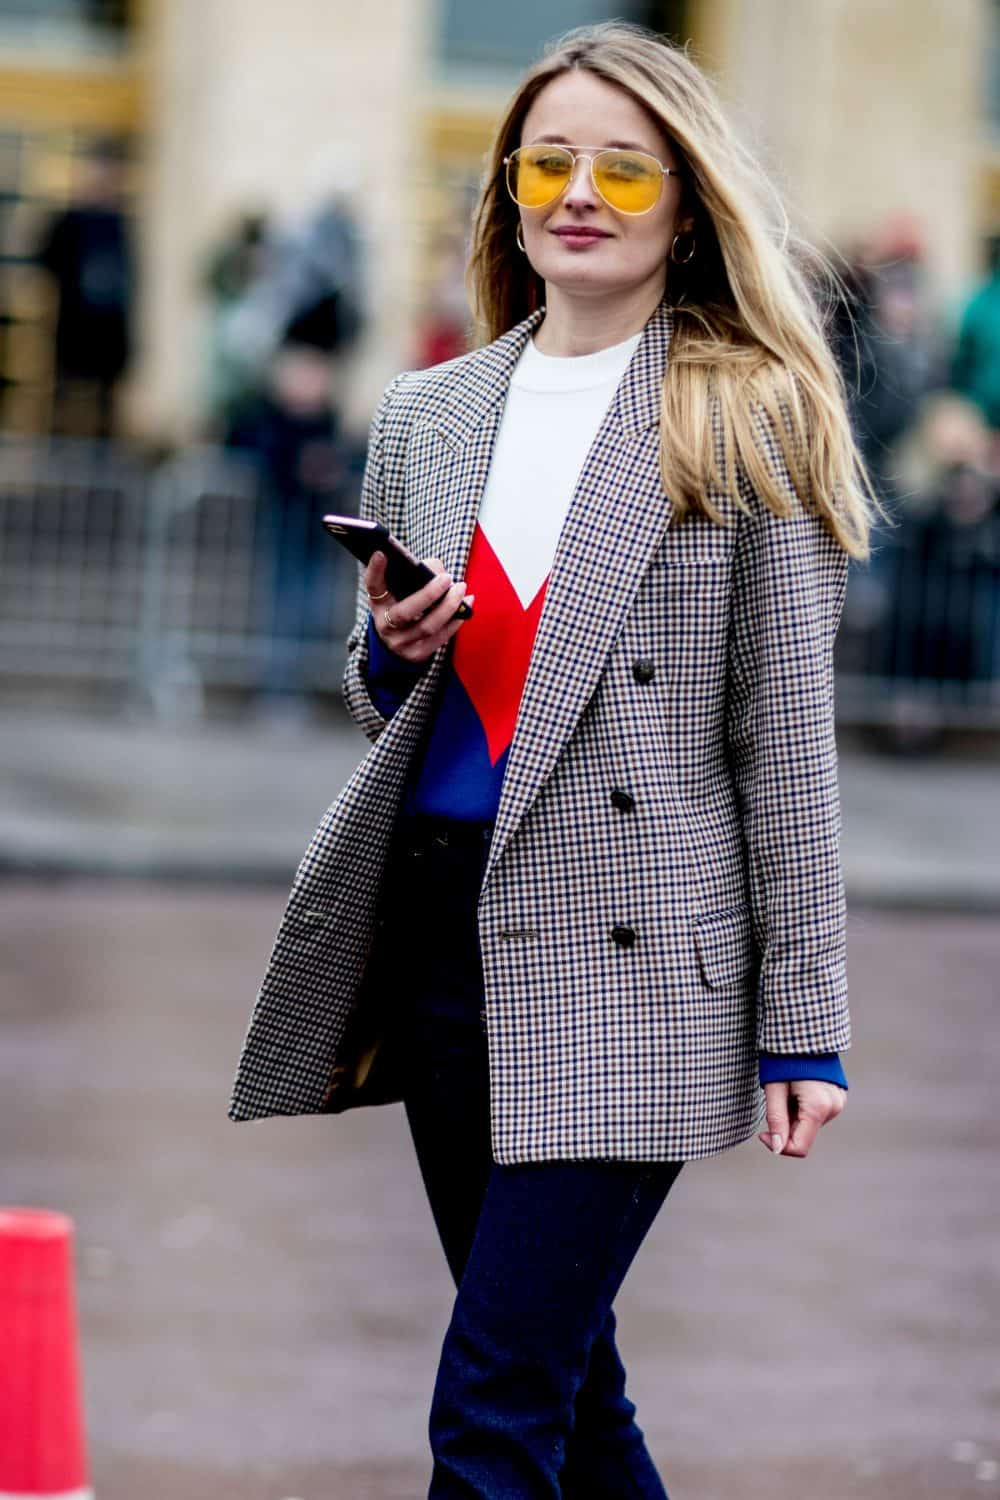 Long Oversized Blazers 2017 Autumn 39 S It Trend The Fashion Tag Blog